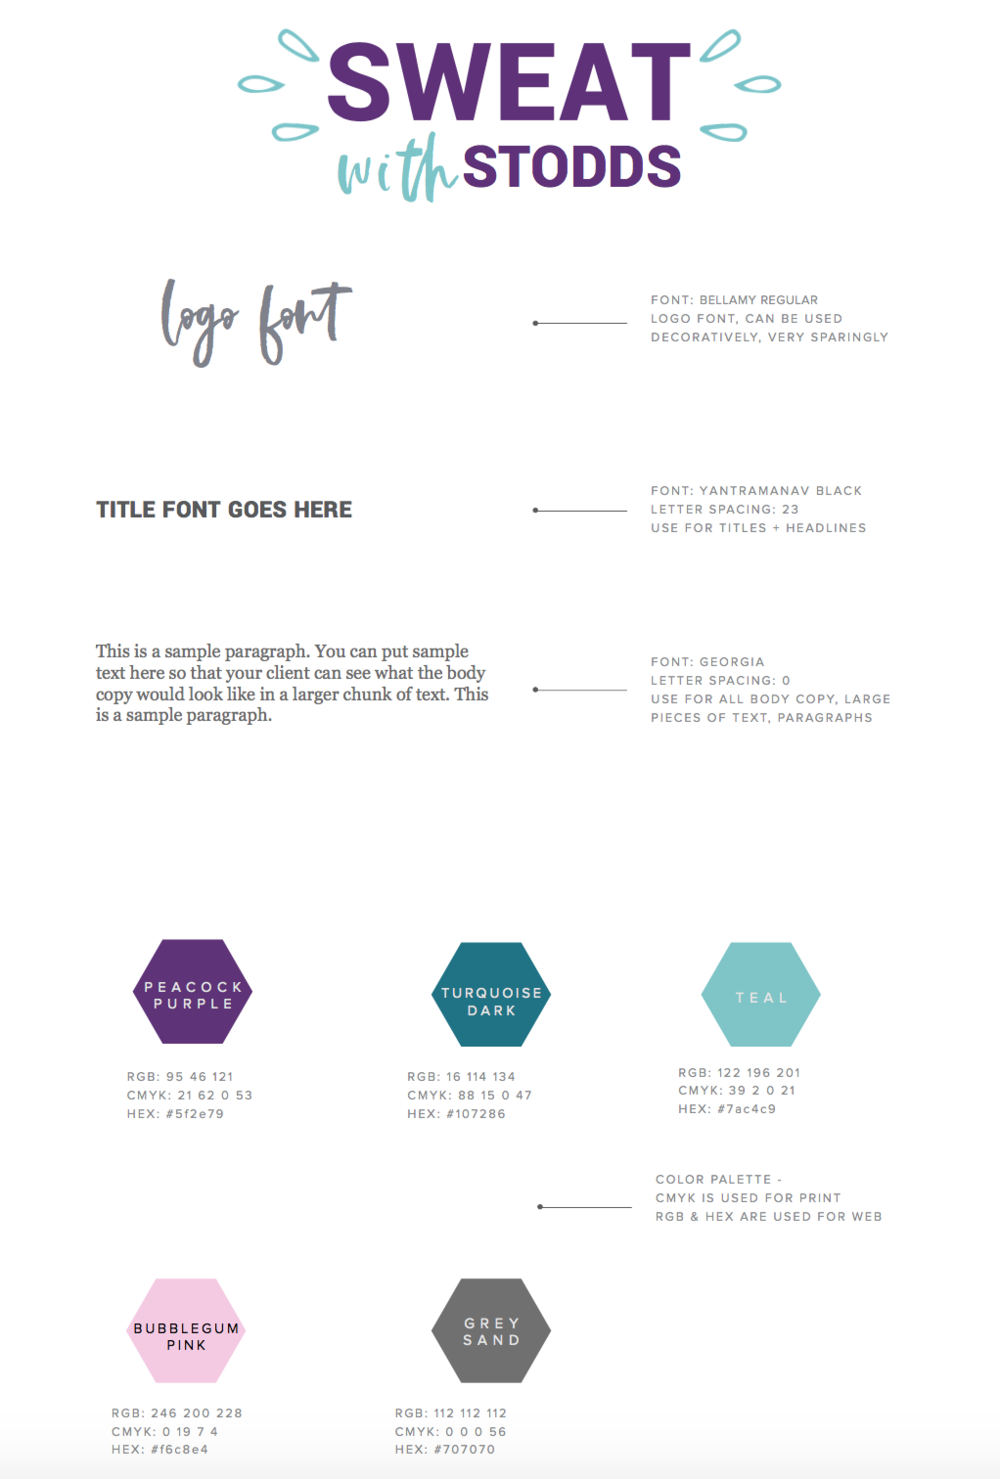 Sweat with Stodds Branding Style Guide